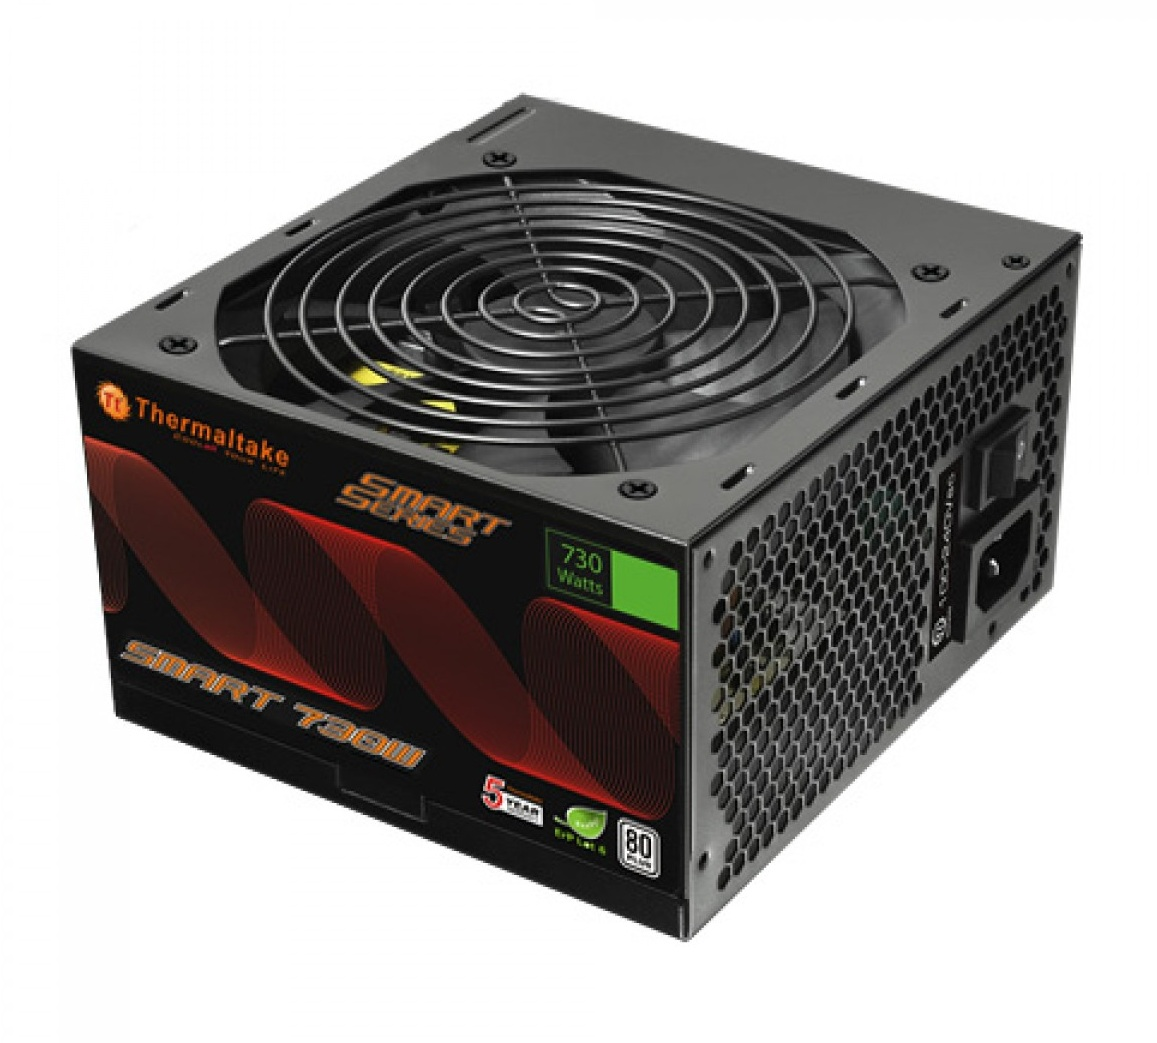 Thermaltake 730W Power Supply